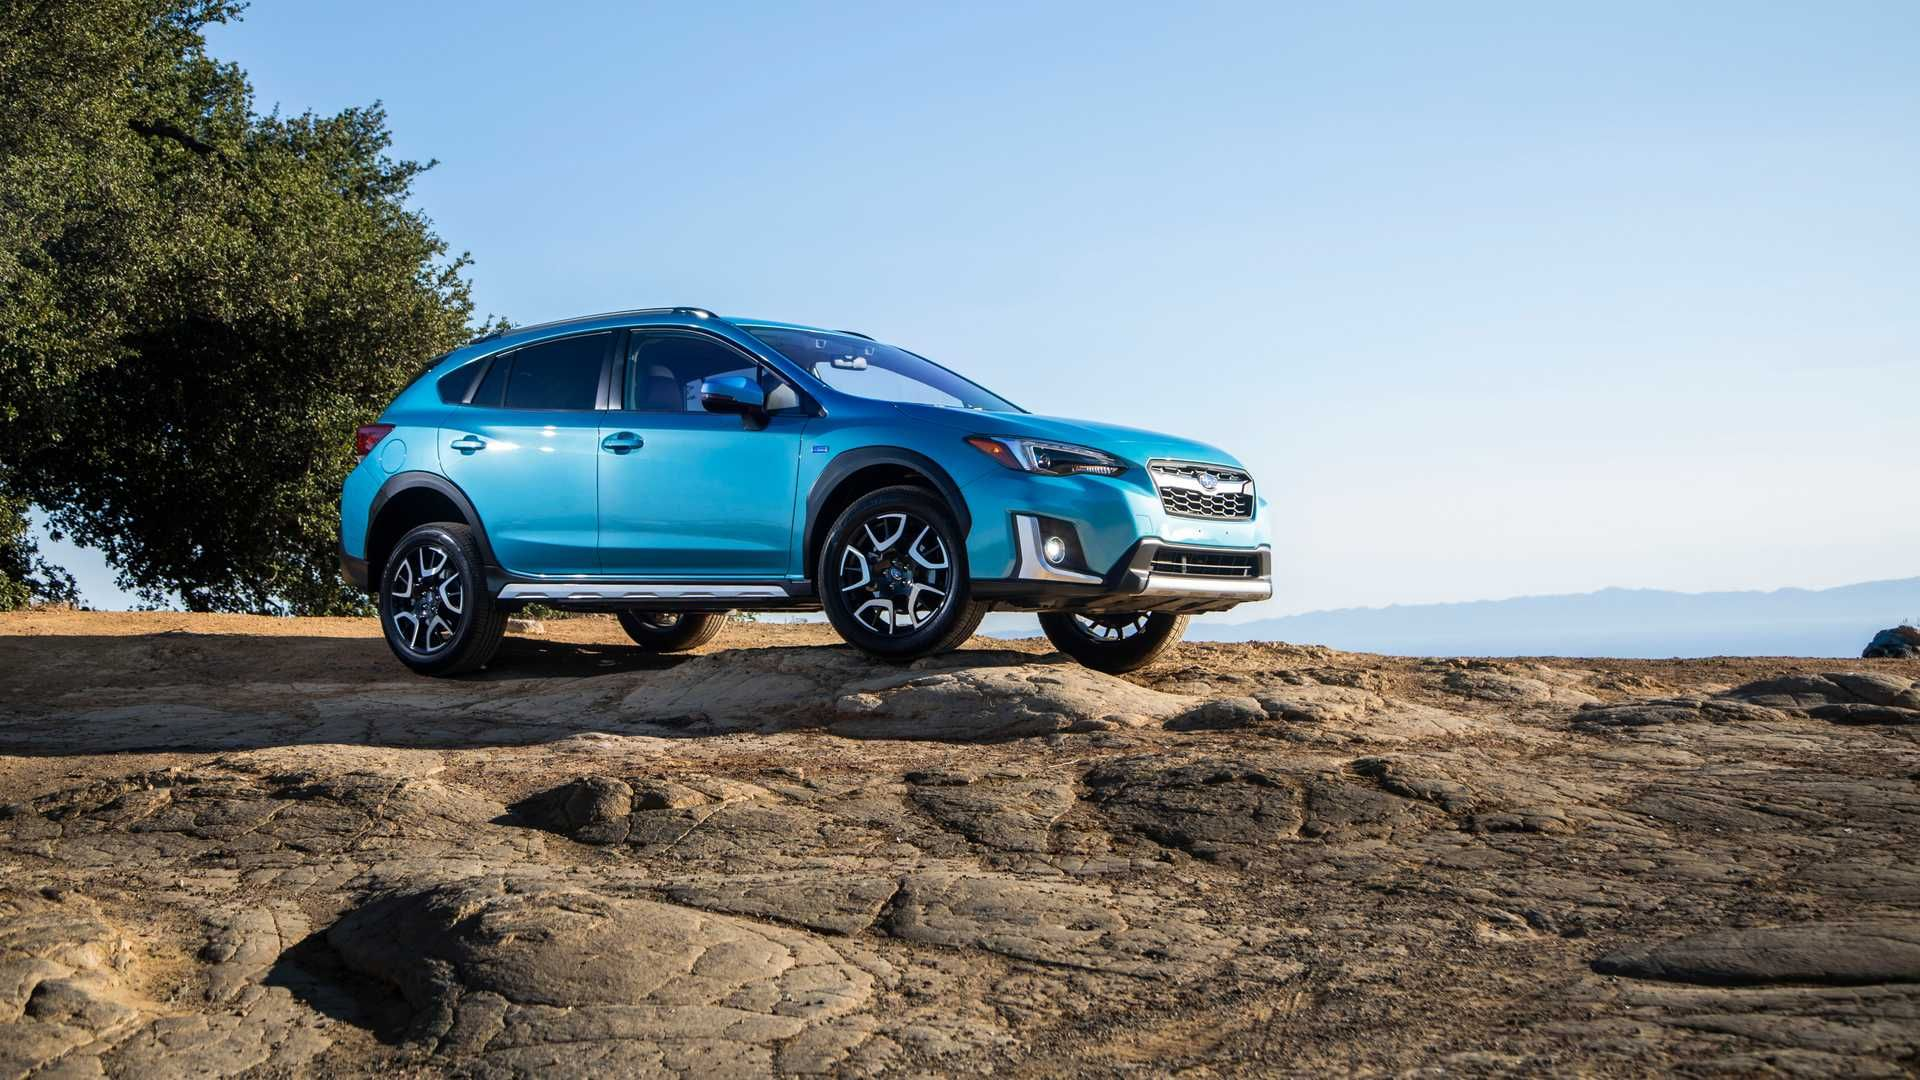 The Six Star Brand Is Working On The New Model 2021 Subaru Crosstrek Xti This Crossover Offers A Premium Look And Even In 2020 Subaru Crosstrek Subaru Subaru Impreza